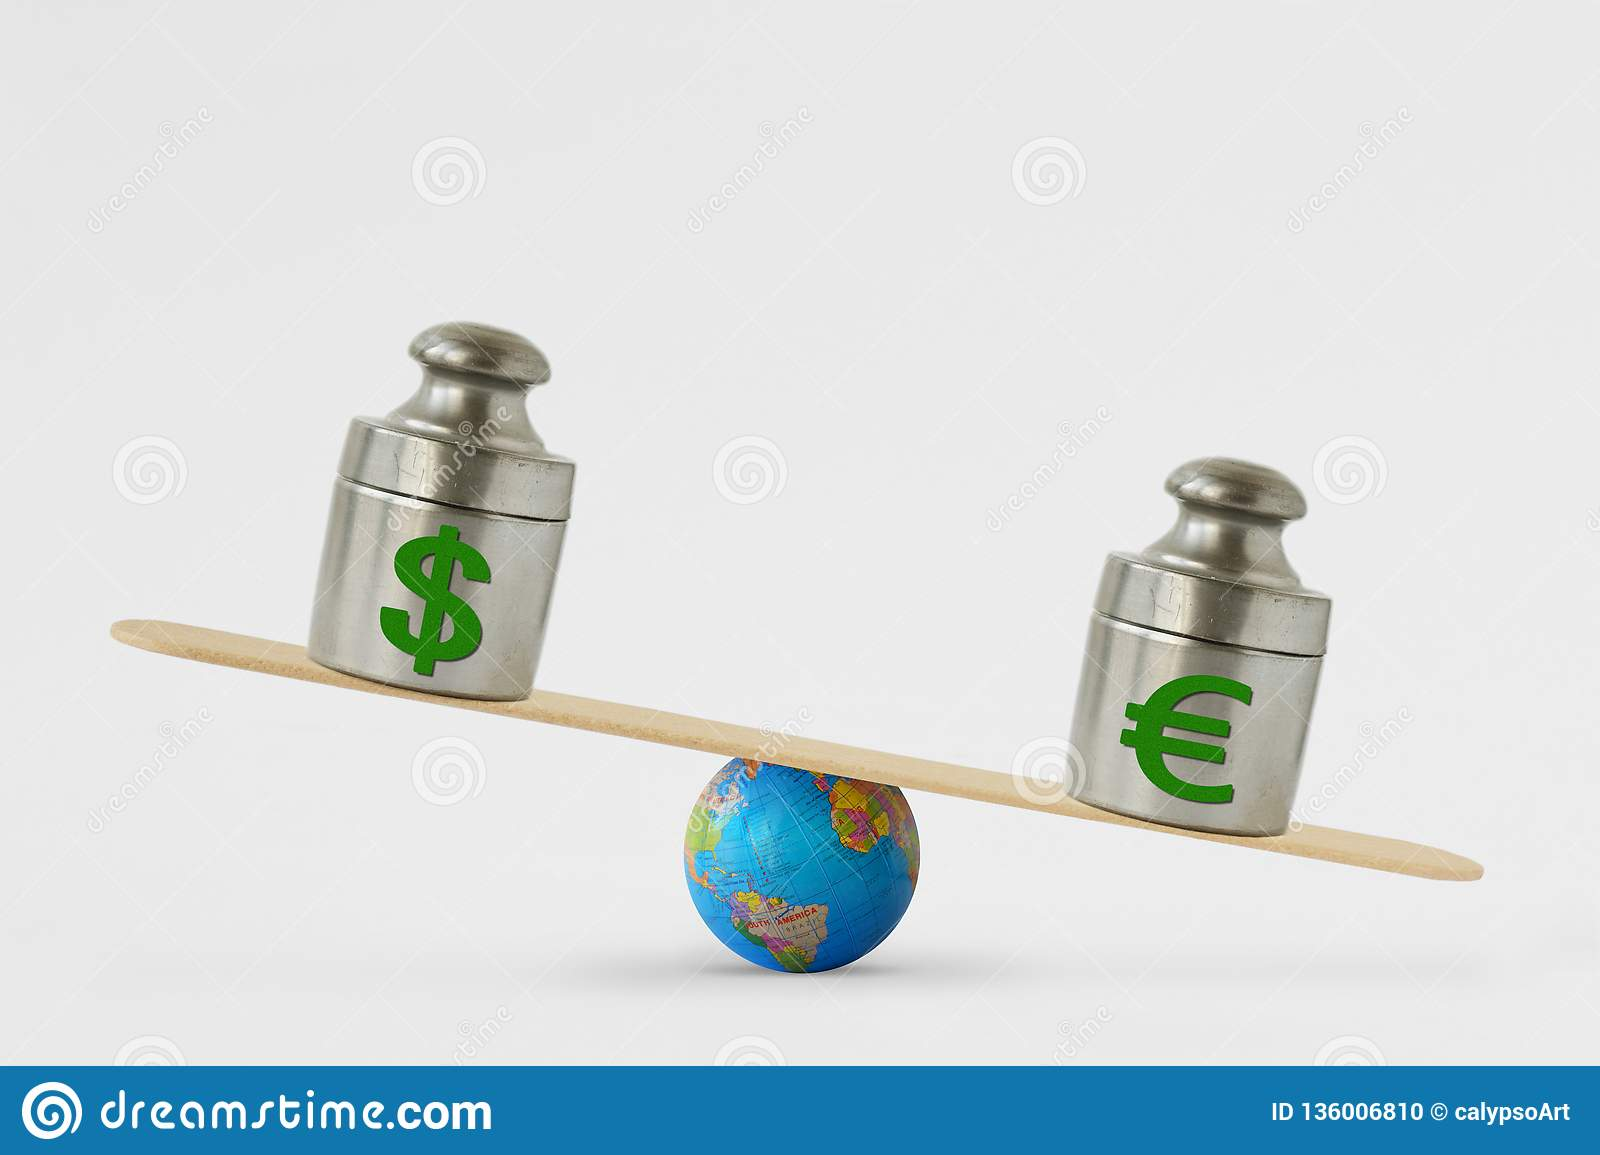 Dollar and euro symbols on balance scale - Concept of euro dominance over dollar in global markets